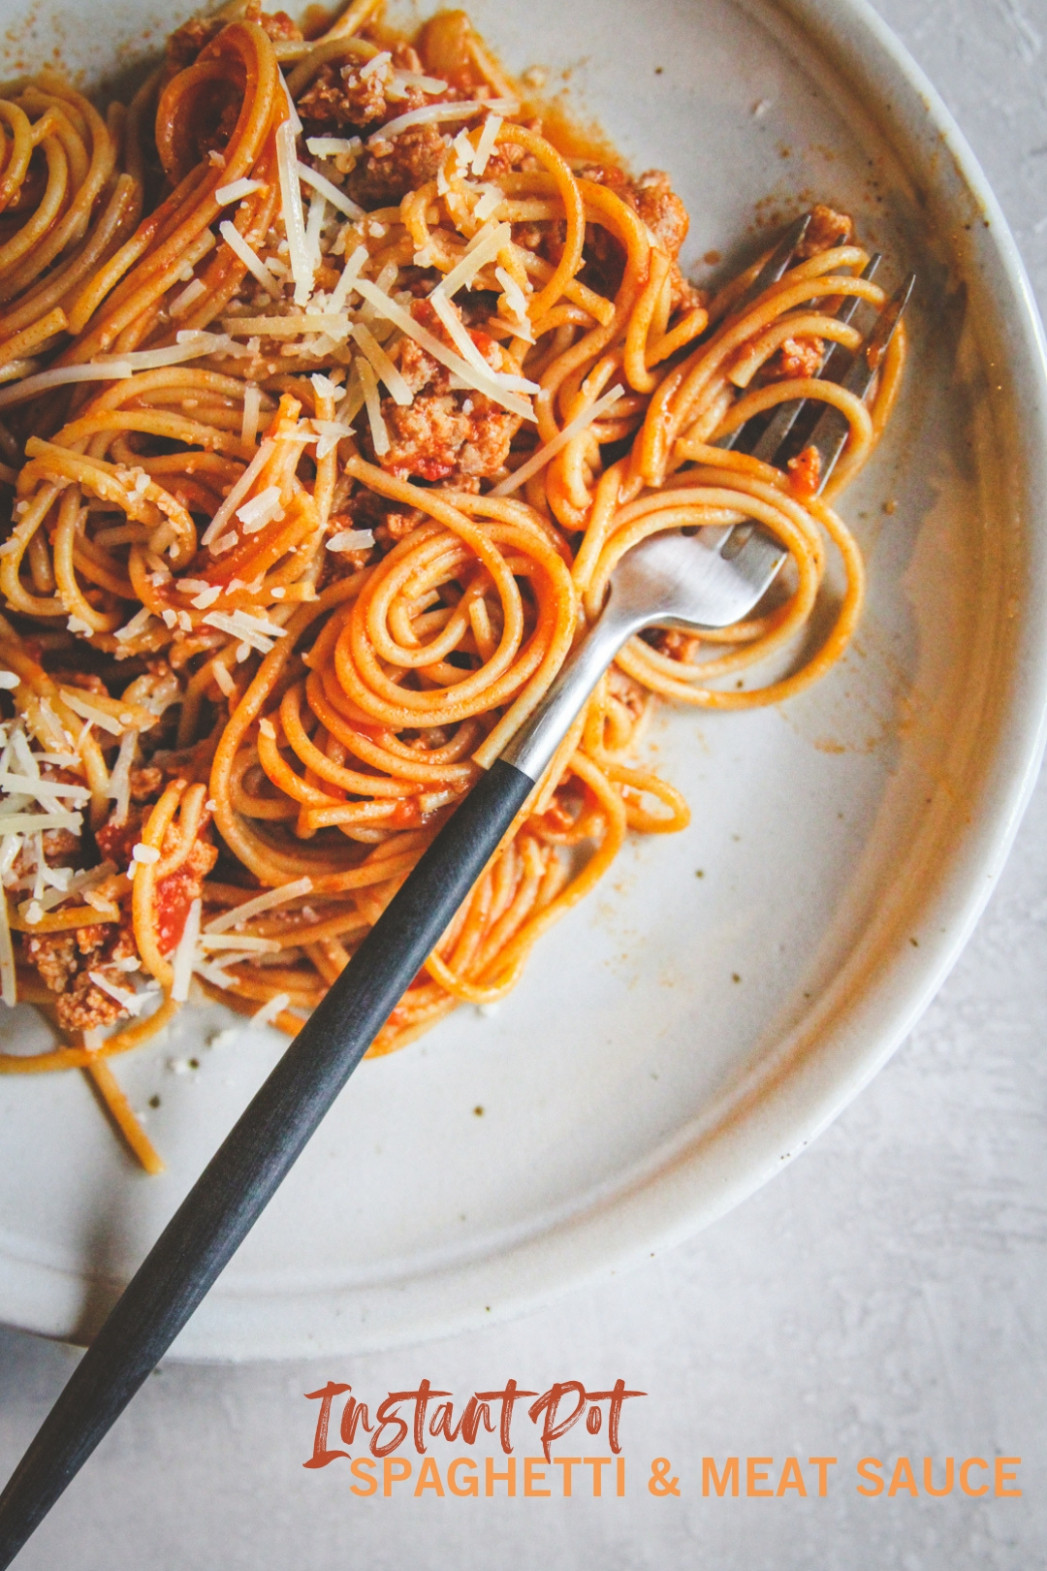 Healthy Instant Pot Spaghetti and Meat Sauce - Sweetphi